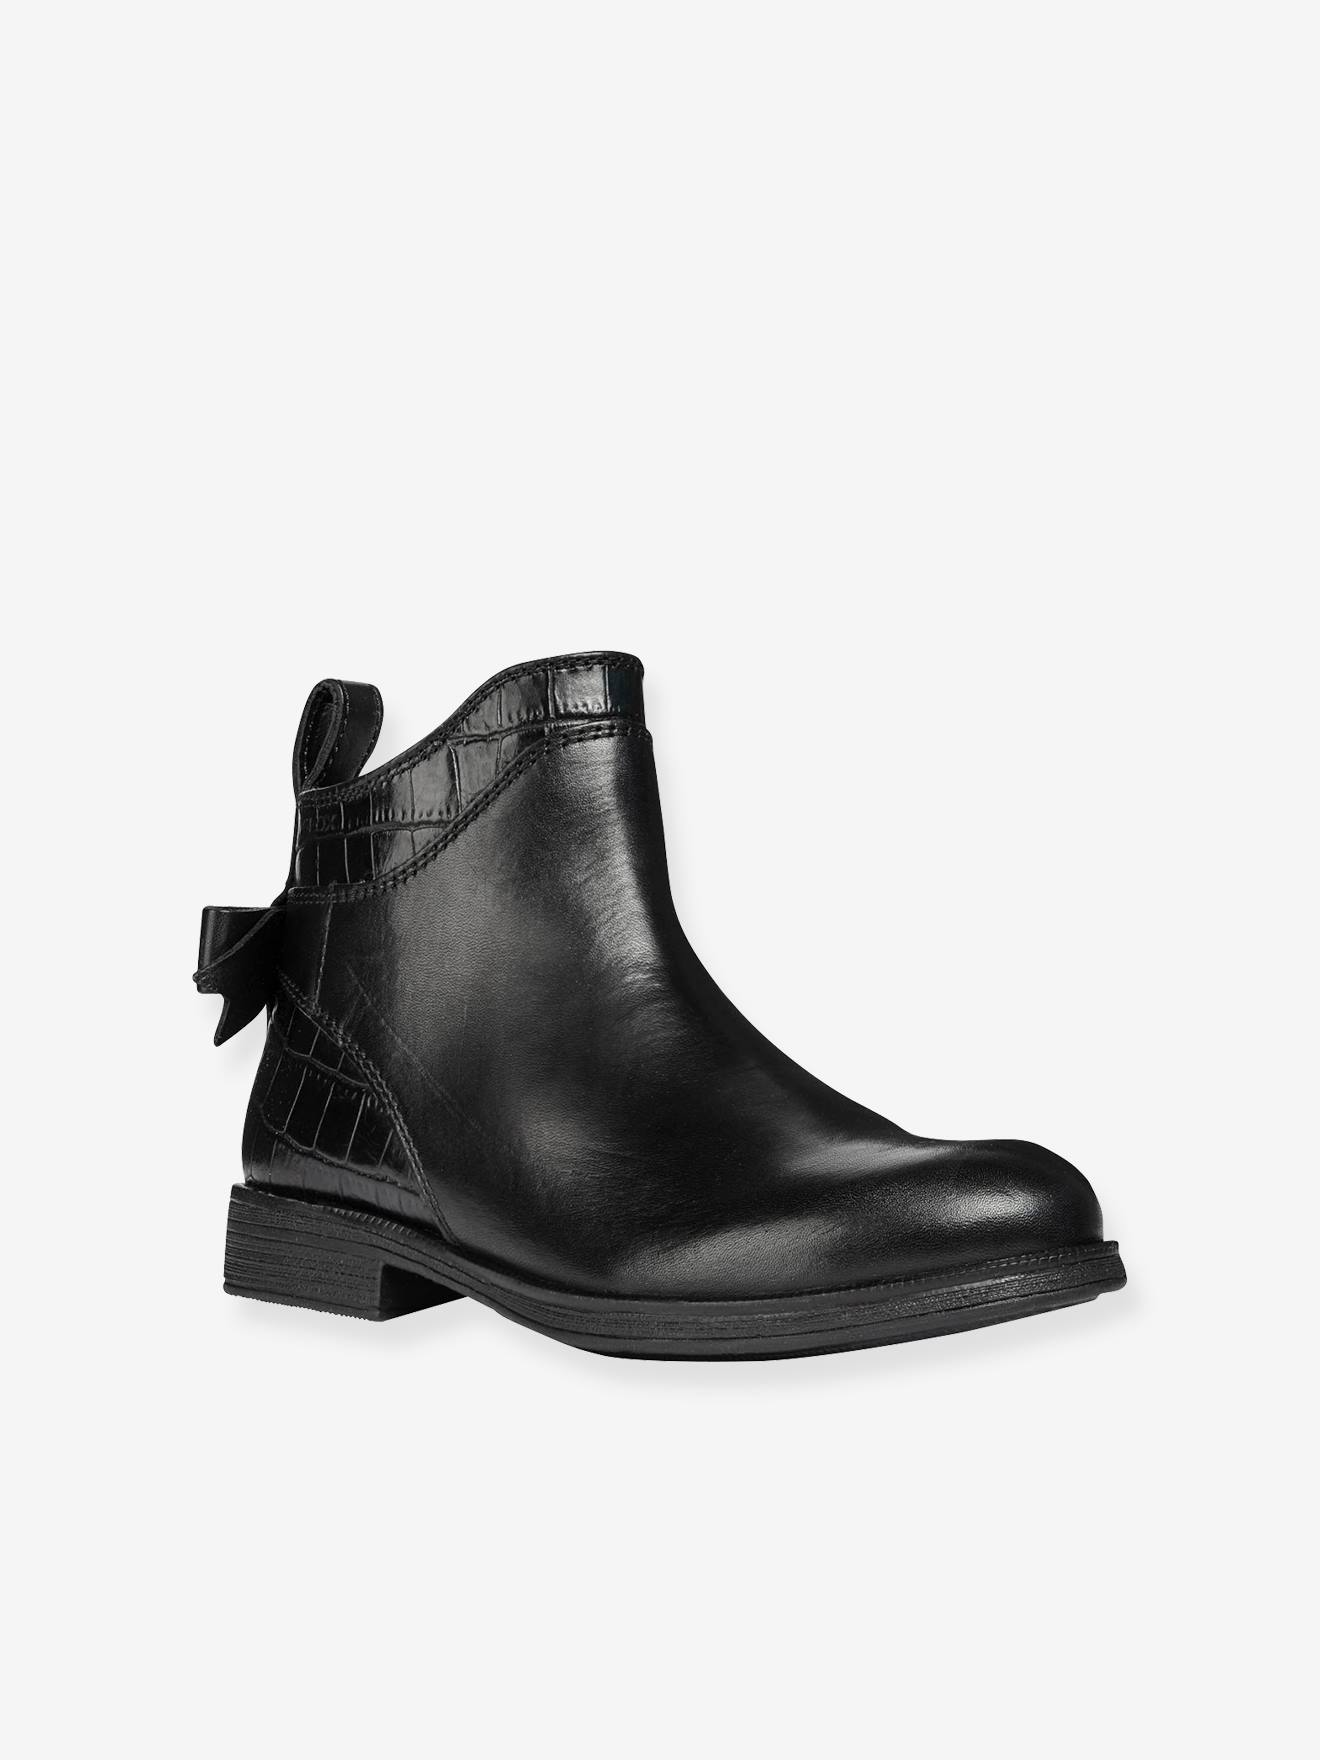 Noir Boots Fille Geox Agata Geox® 7f6gYby